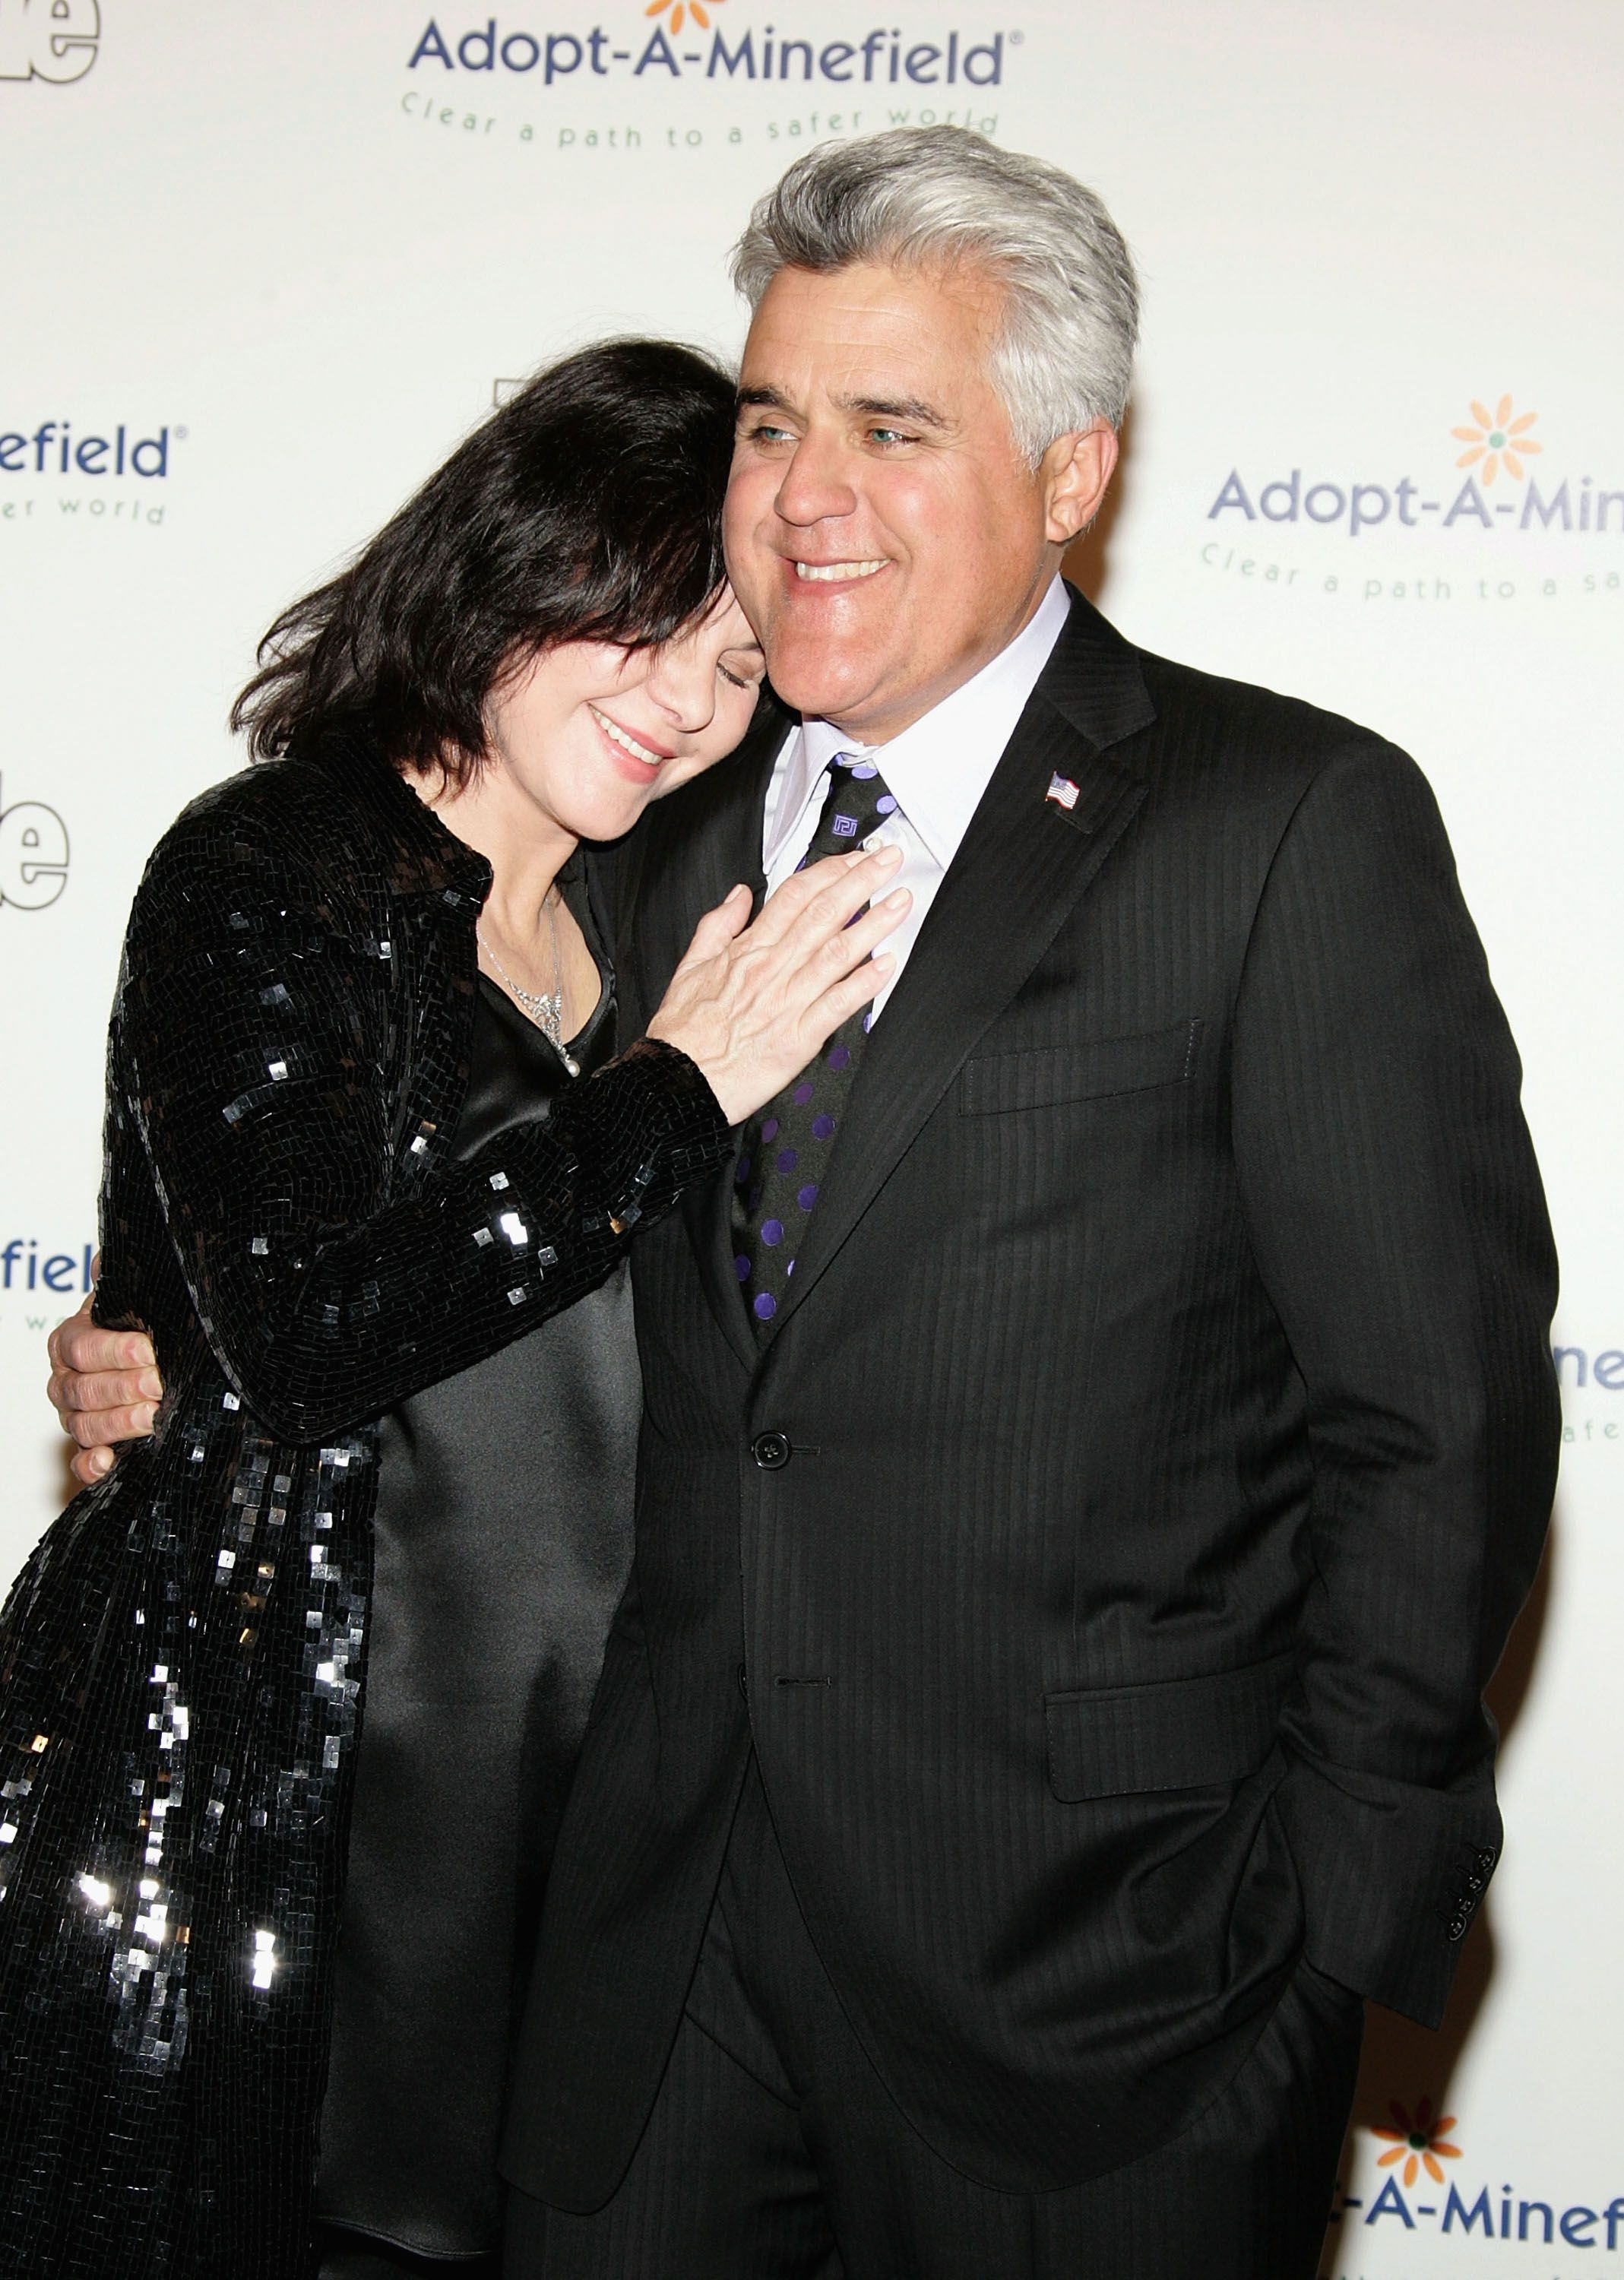 Jay Leno and his wife Mavis Nicholson atthe Fifth Annual Adopt-A-Minefield Gala night on November 15, 2005, in Beverly Hills, California | Photo:Frazer Harrison/Getty Images